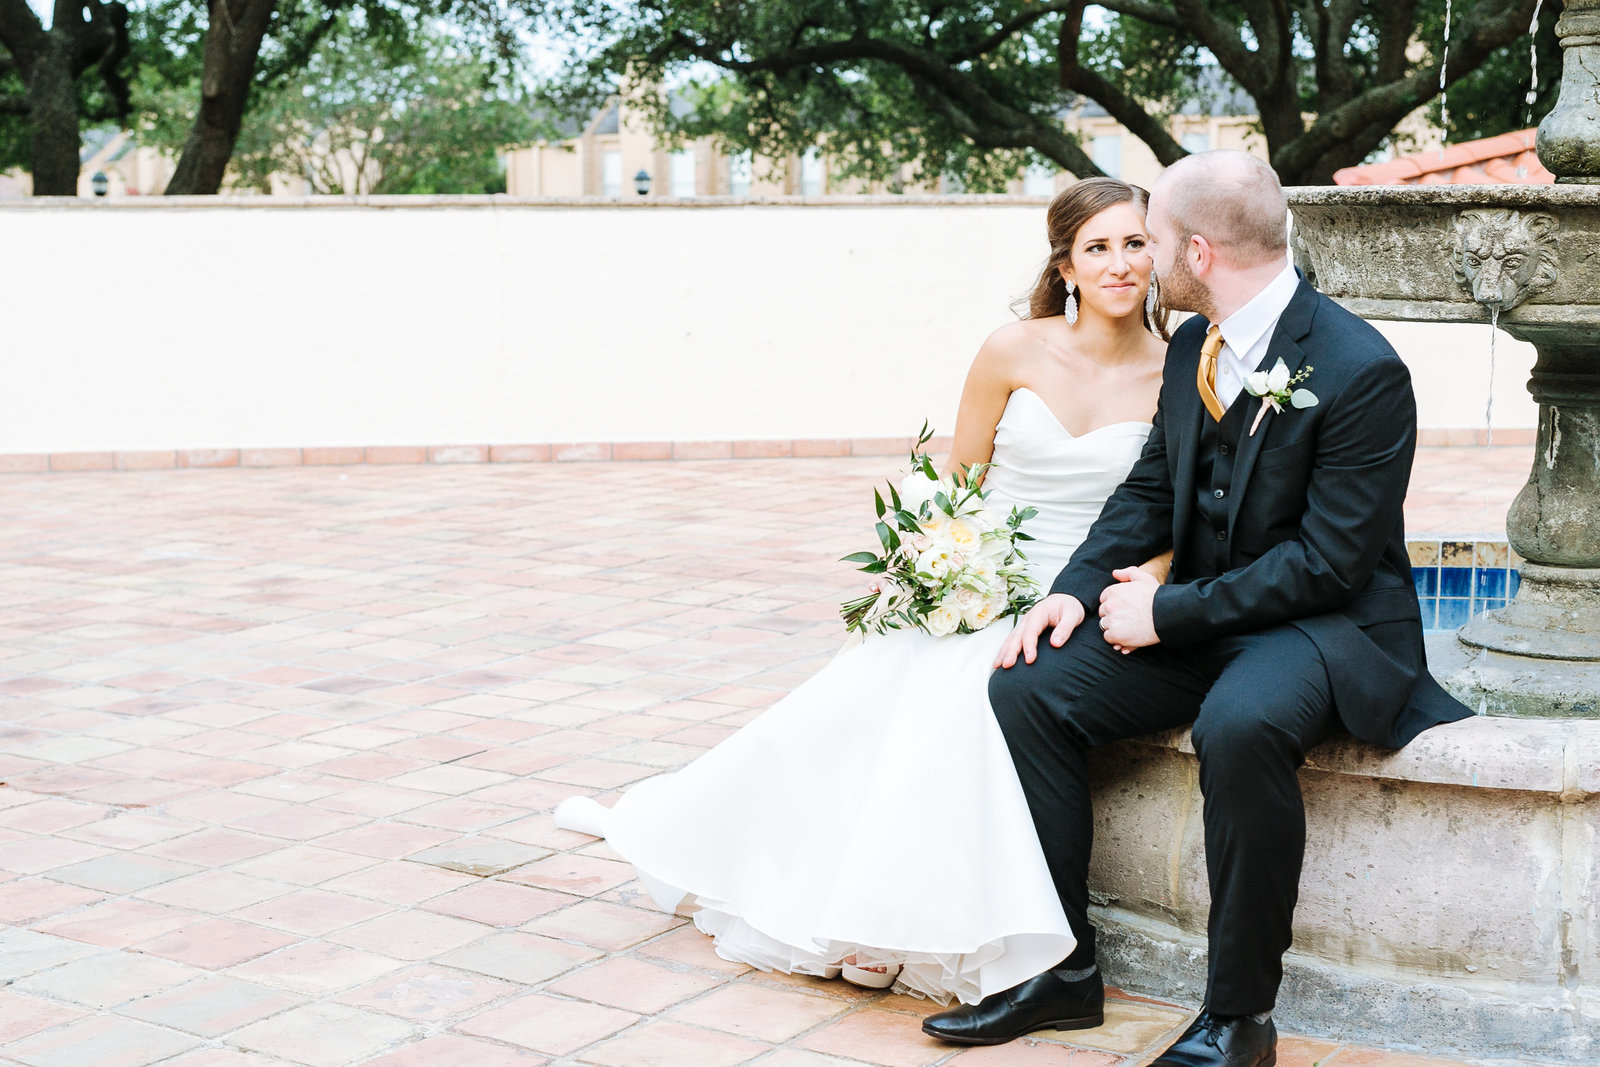 the gallery wedding venue in houston, texas